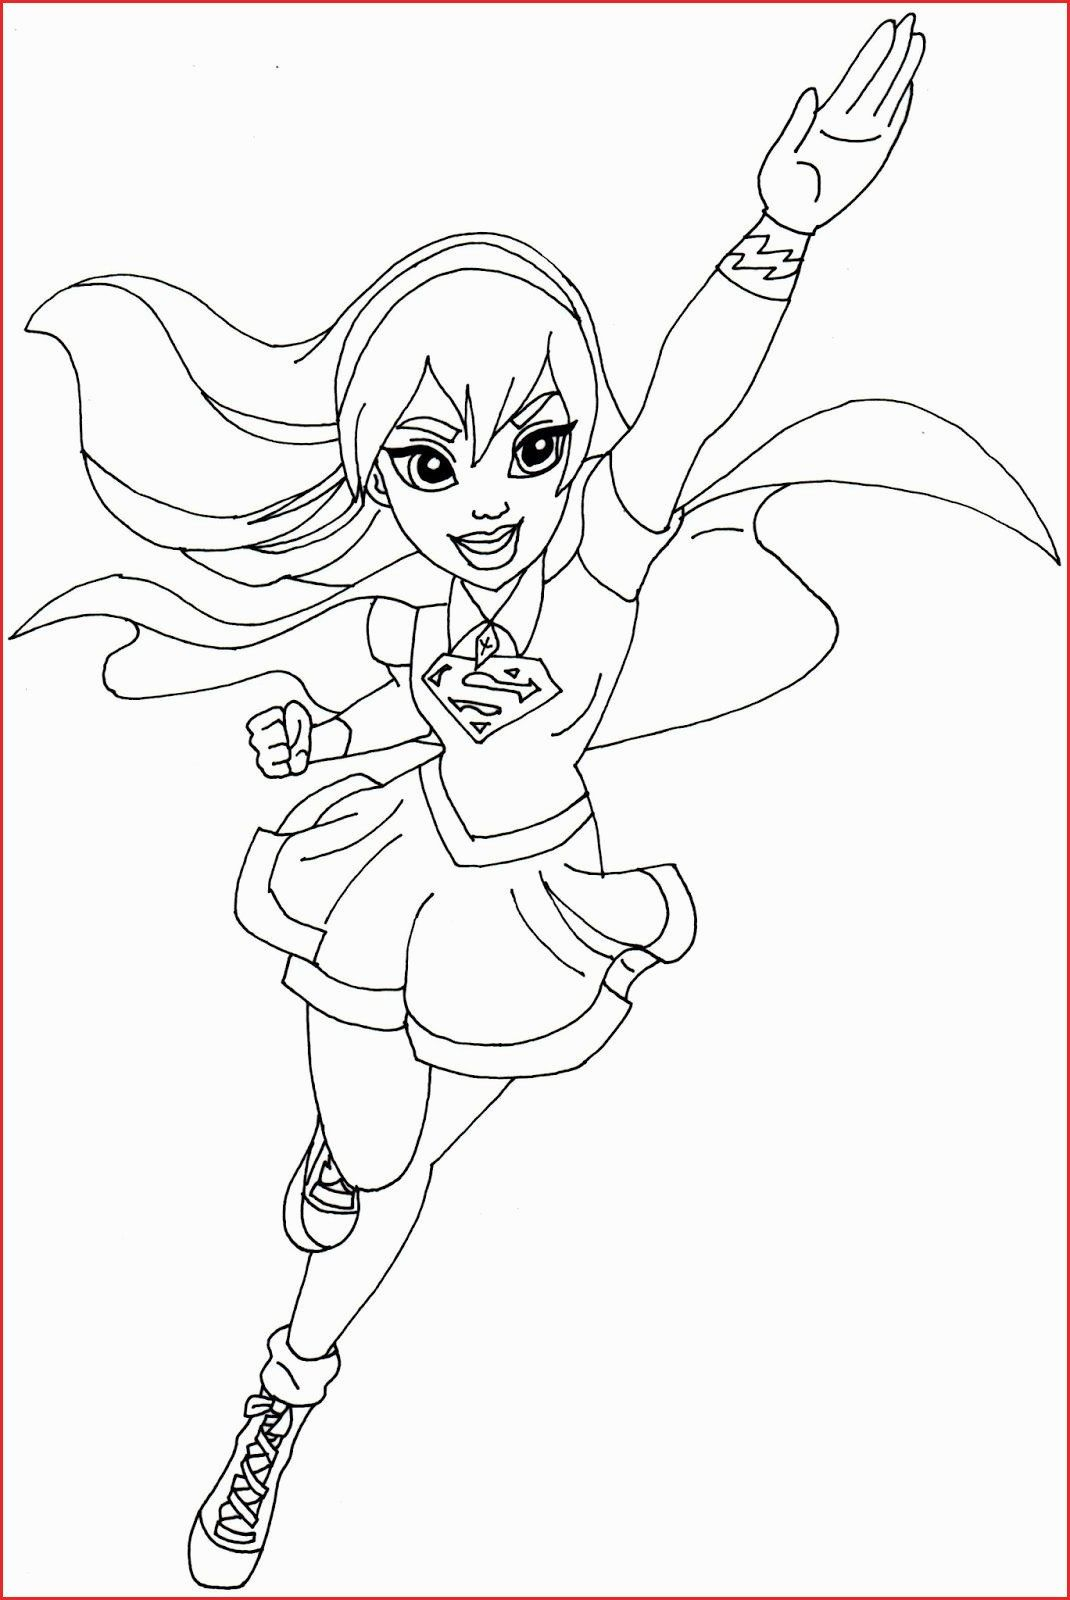 Kid Superhero Coloring Pages Lovely Supergirl Coloring Pages Printable Superhero Coloring Superhero Coloring Pages Spiderman Coloring Superhero Coloring